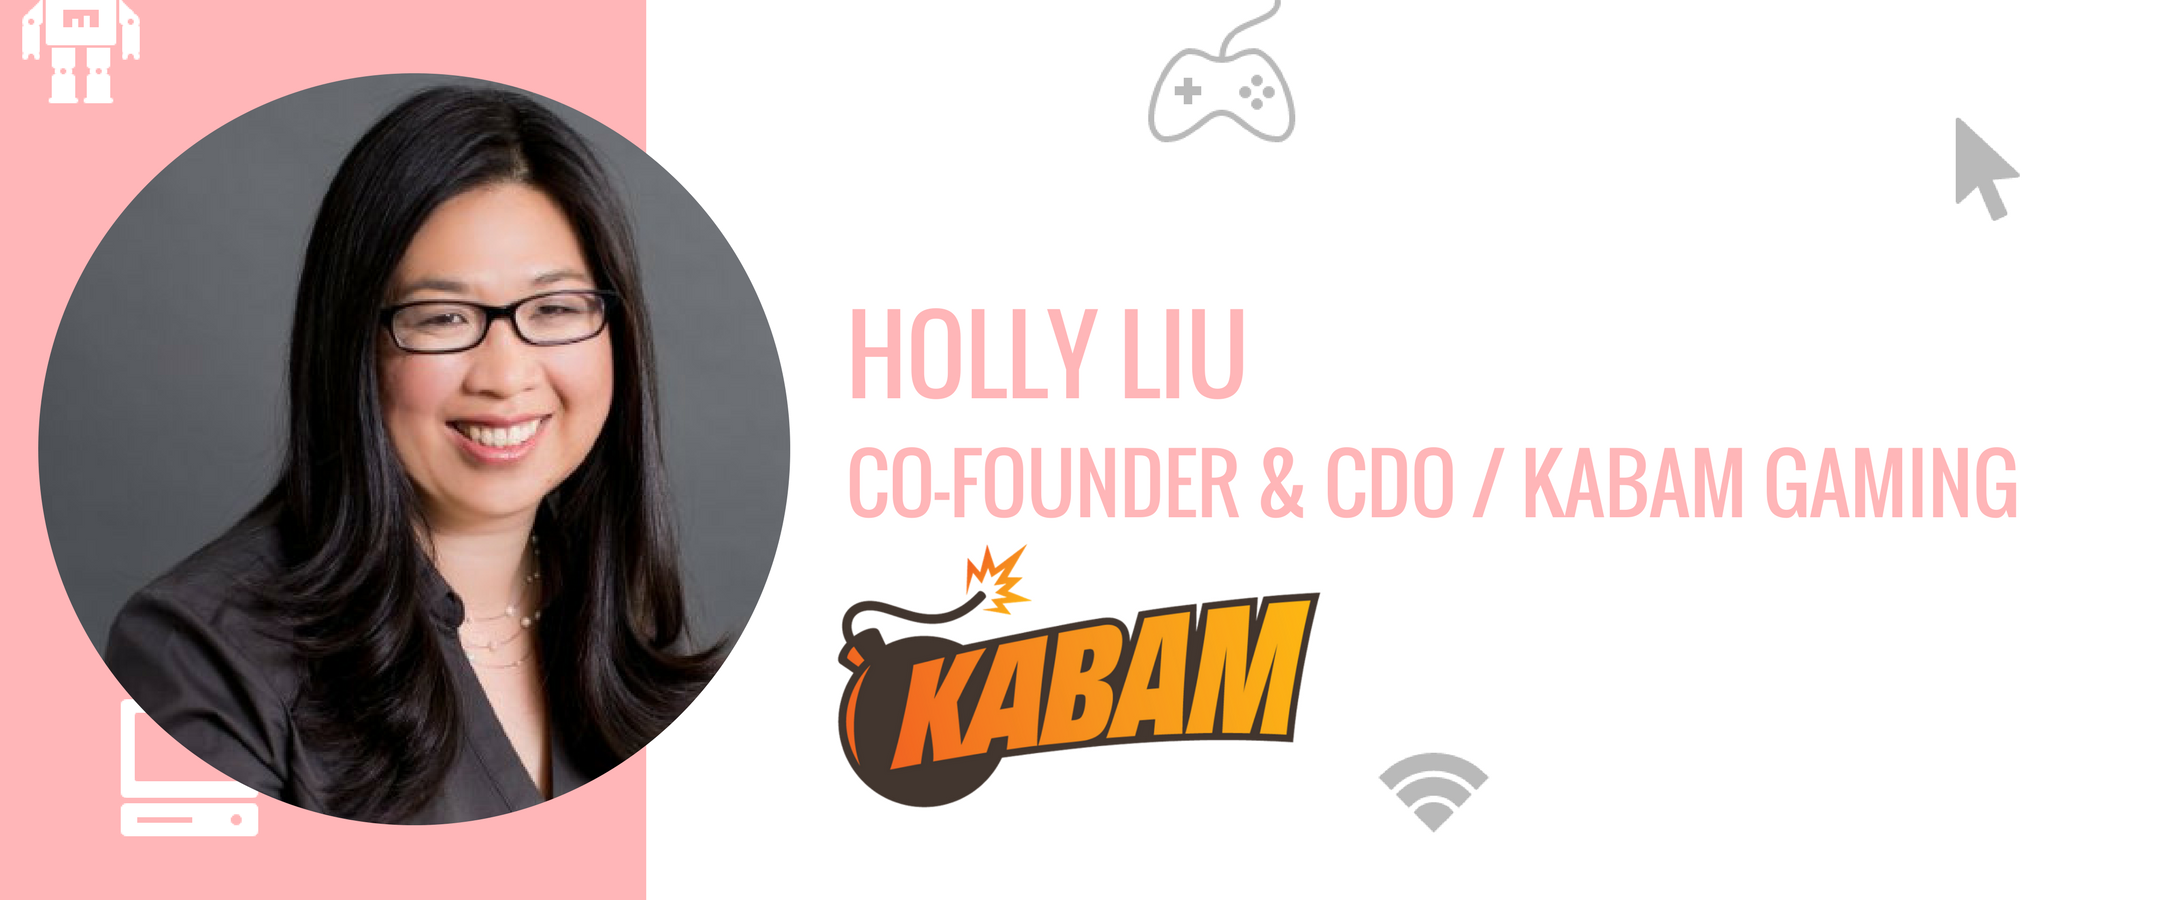 holly liu - cofounder of kabam